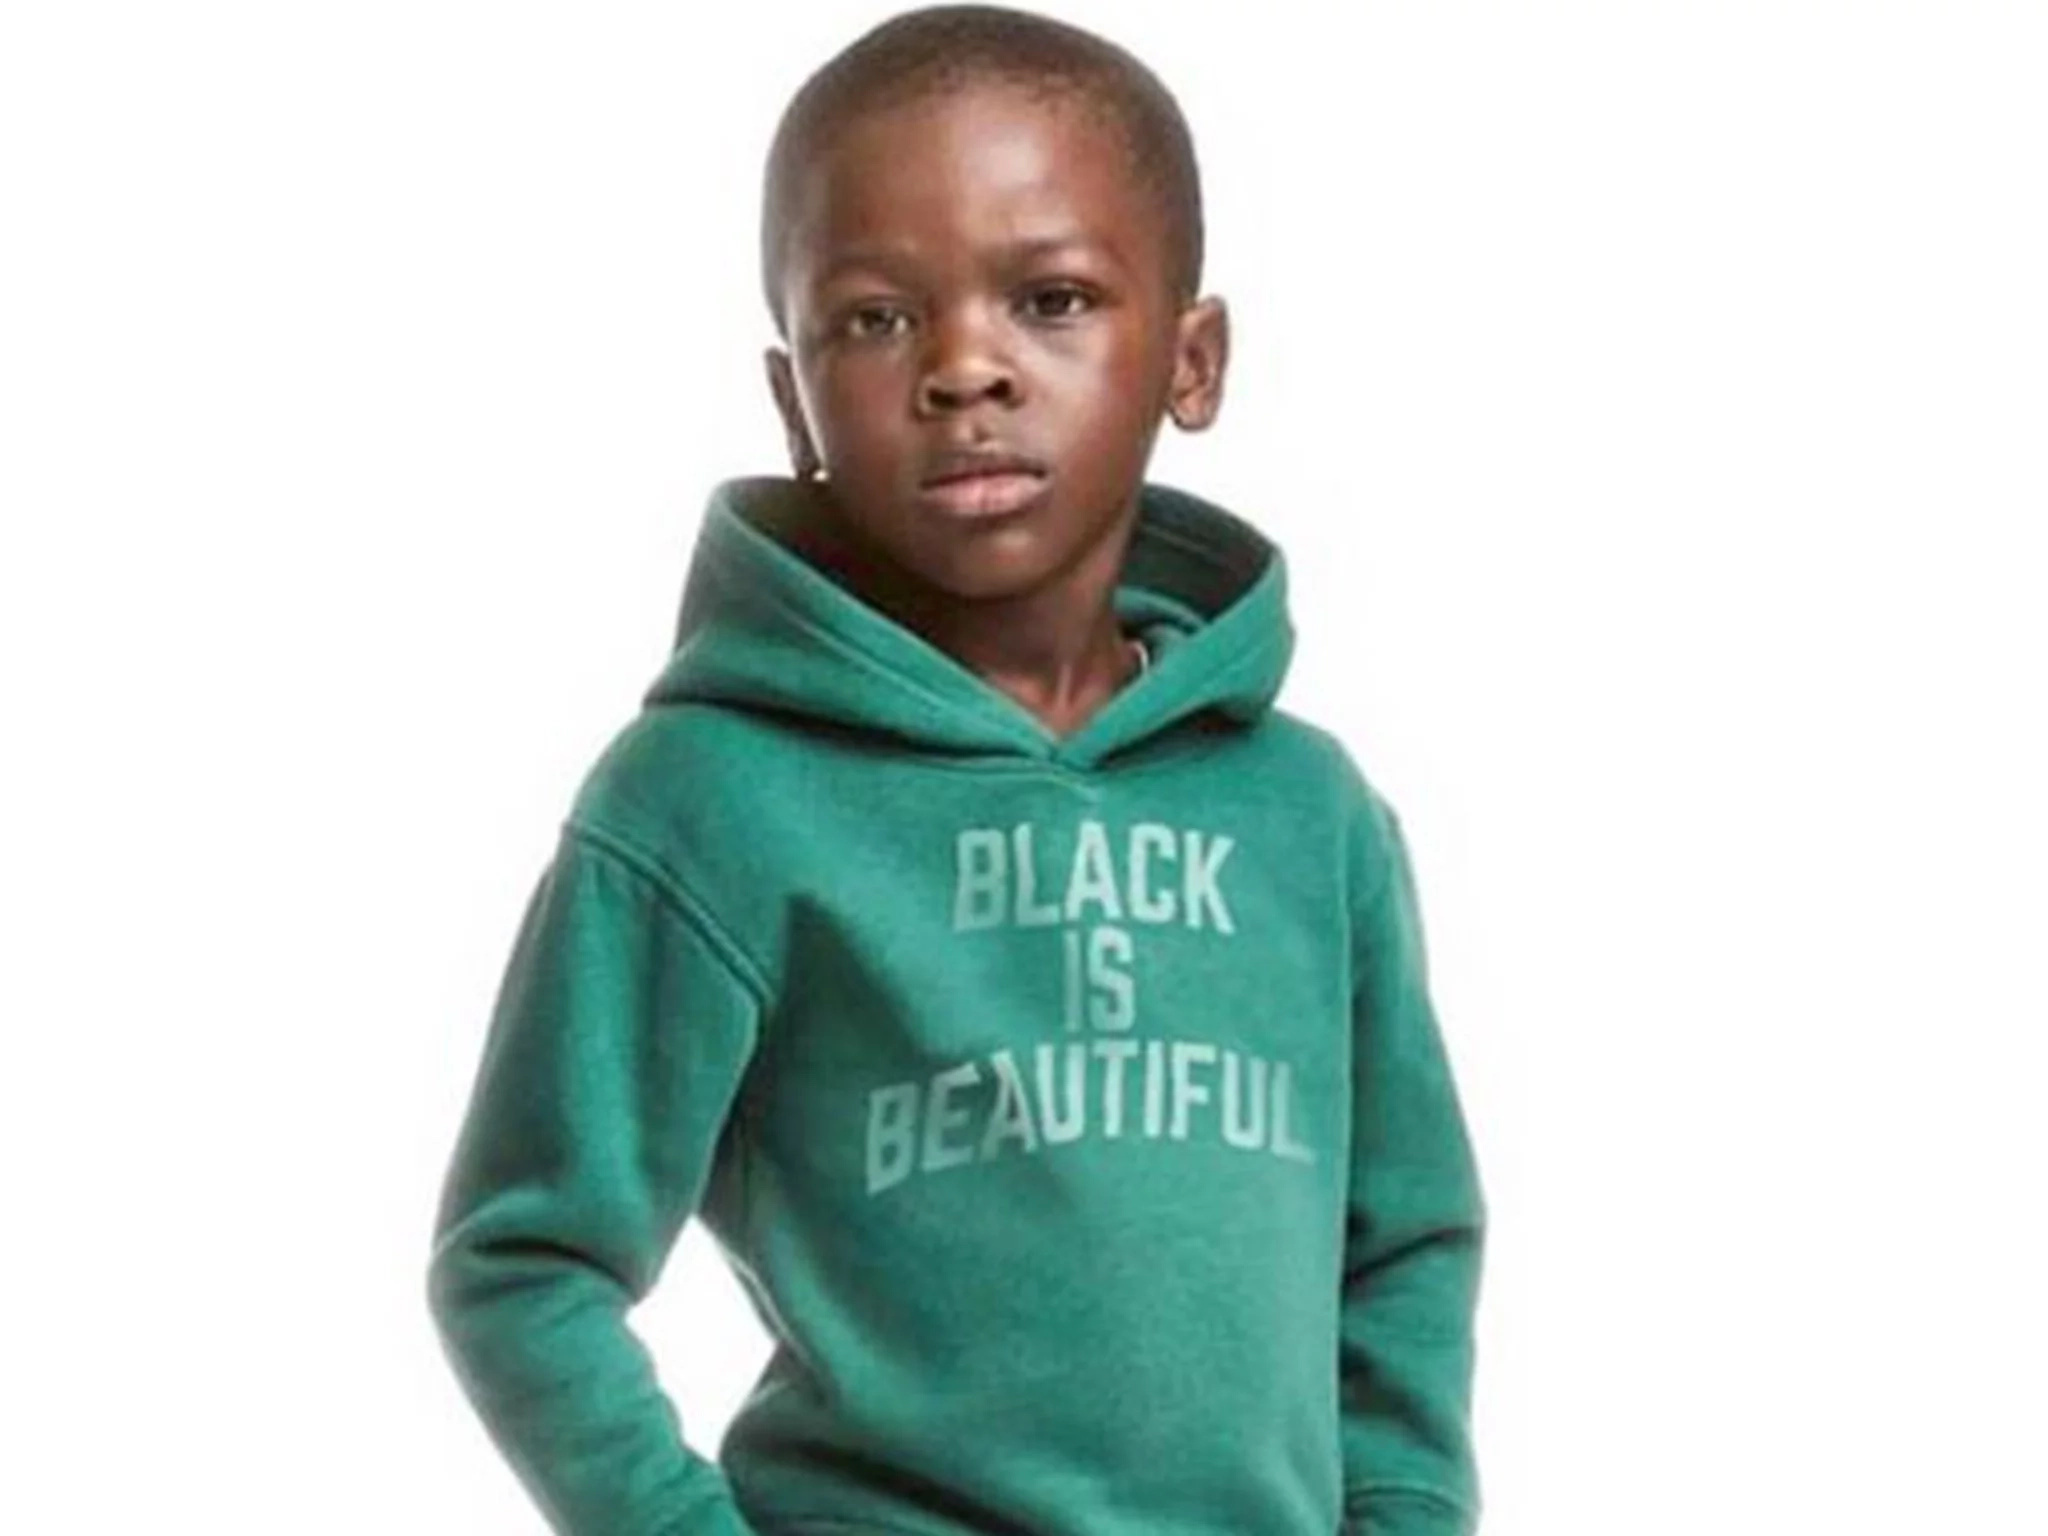 Racist 'coolest monkey in the jungle' hoodies bring out black creativity